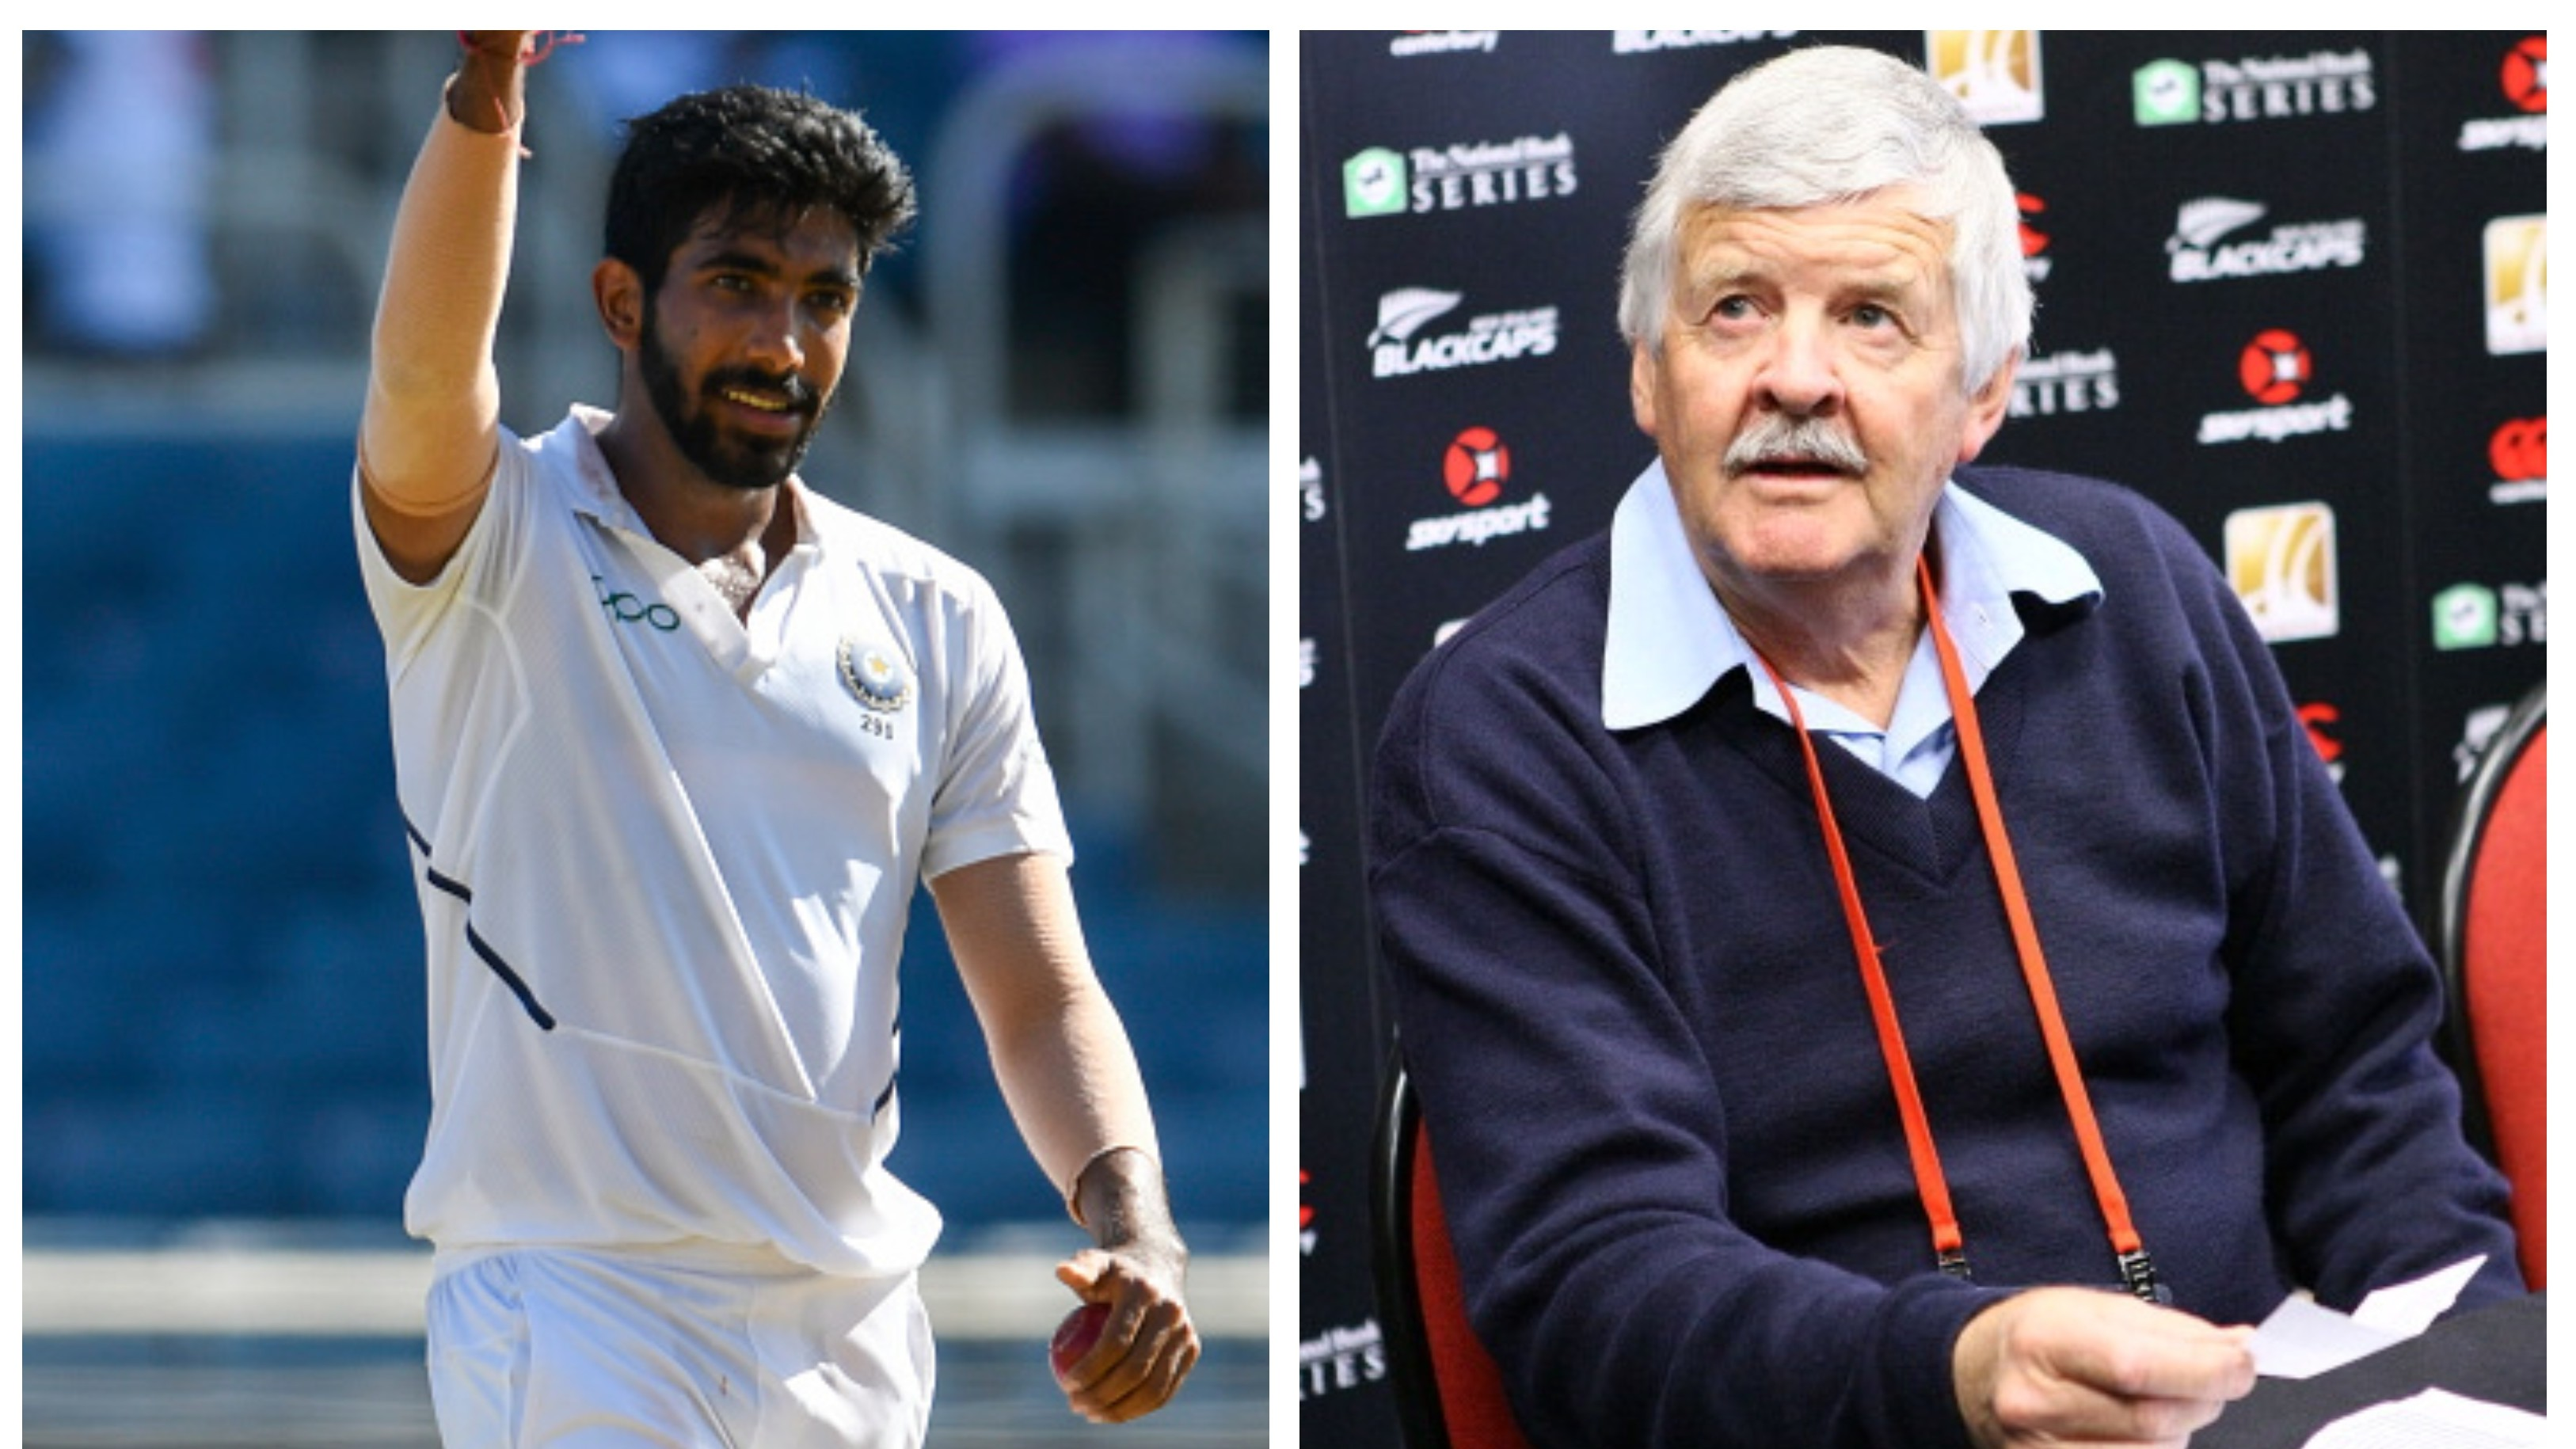 NZ v IND 2020: Surprised by his ODI failures, Turner foresees Bumrah's strong comeback during Tests